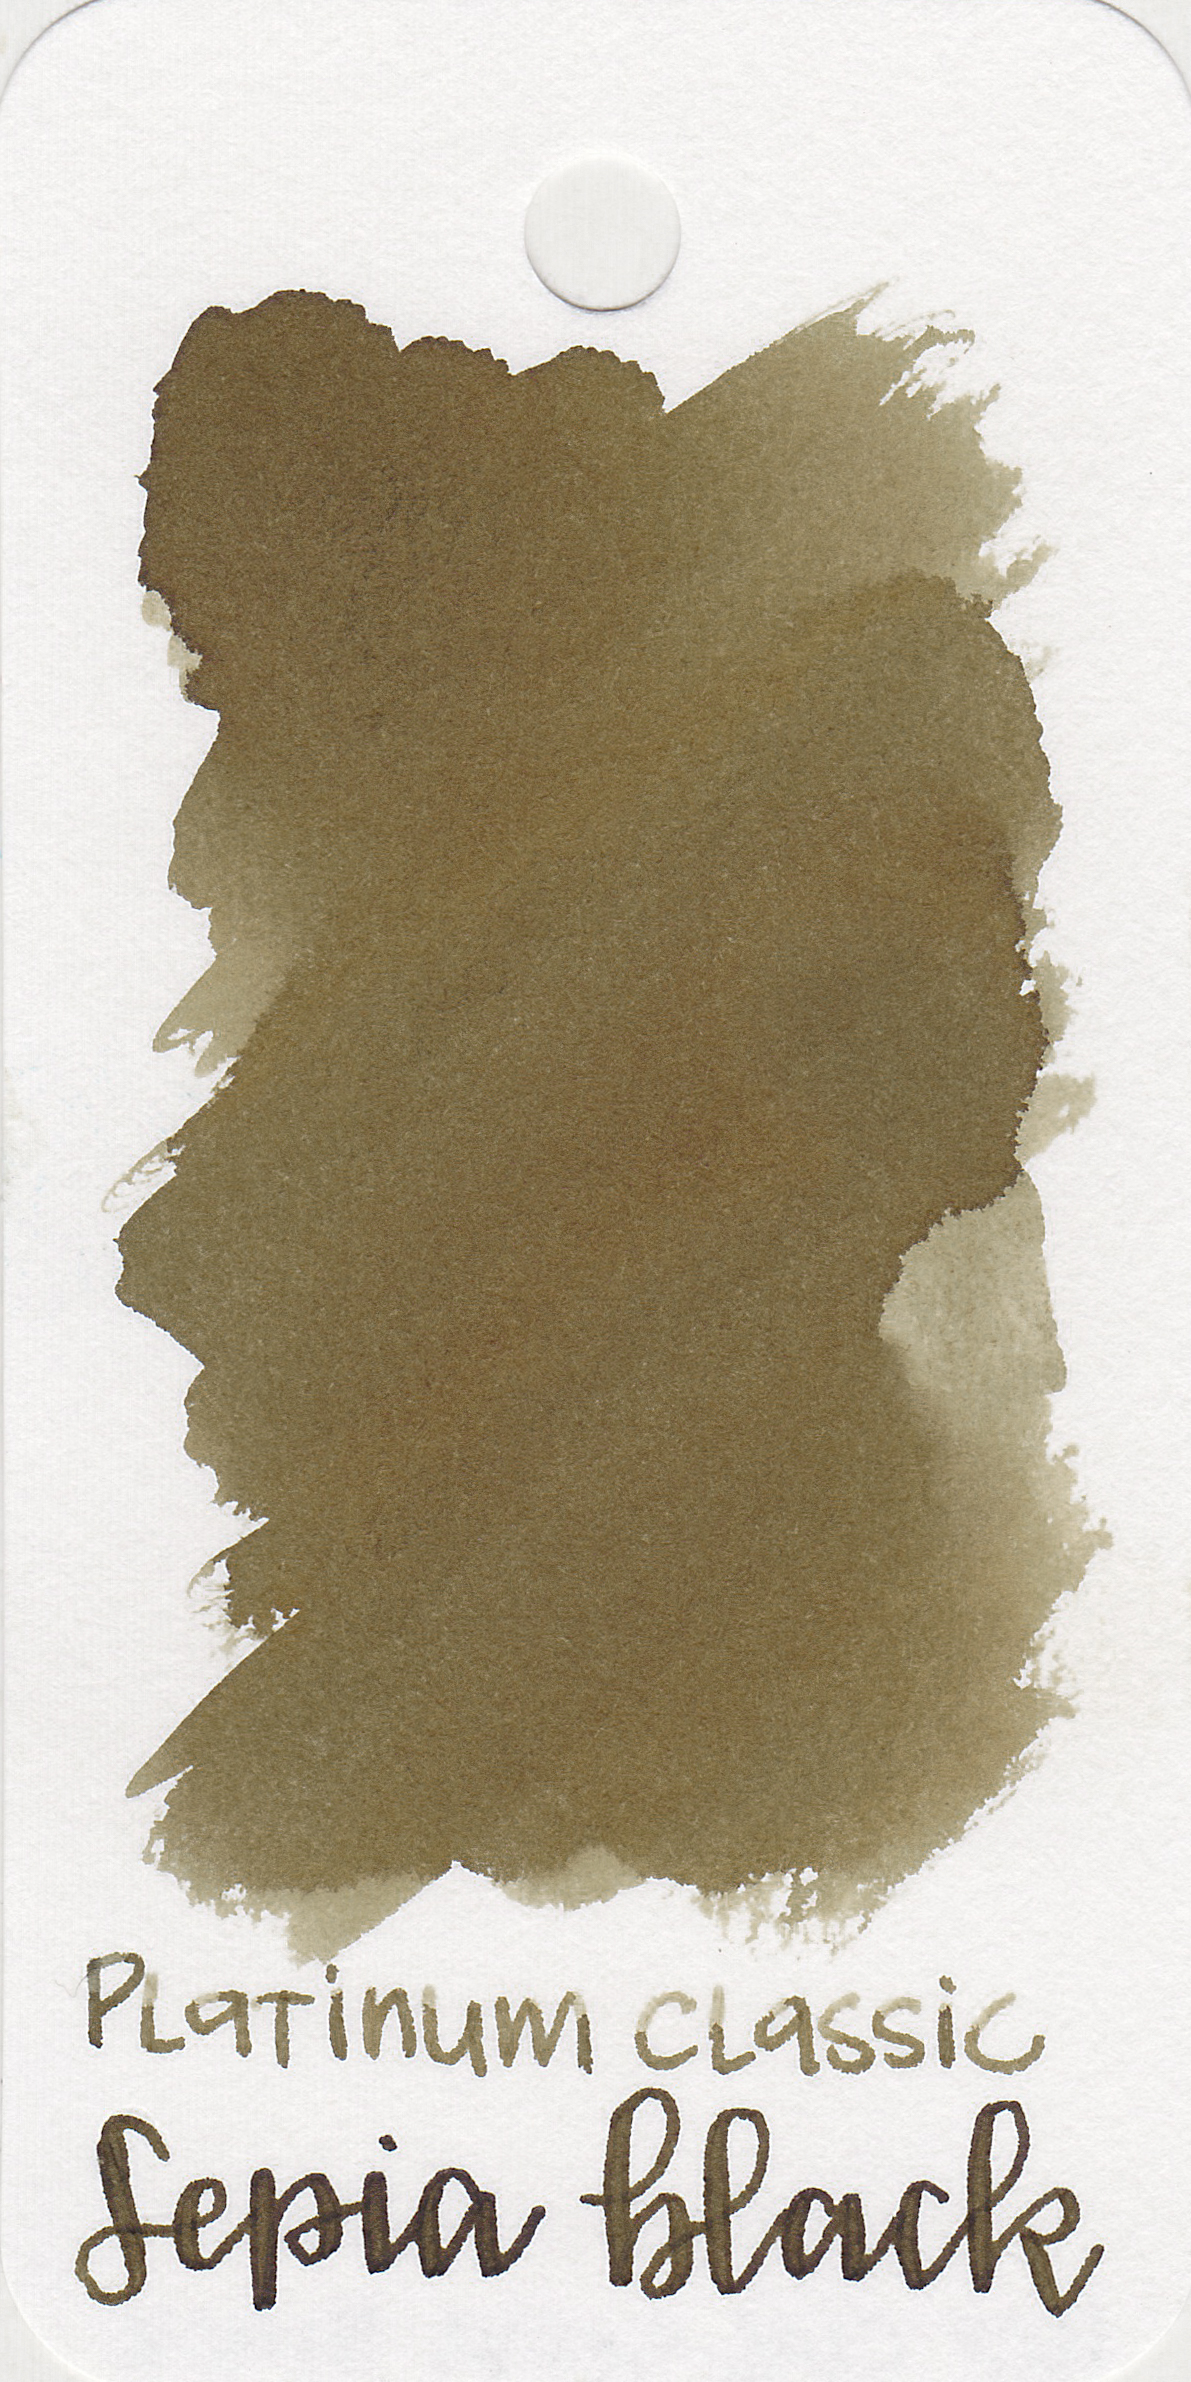 The color: - Sepia Black is an interesting cool-toned brown. It does remind me of old sepia black and white photos.